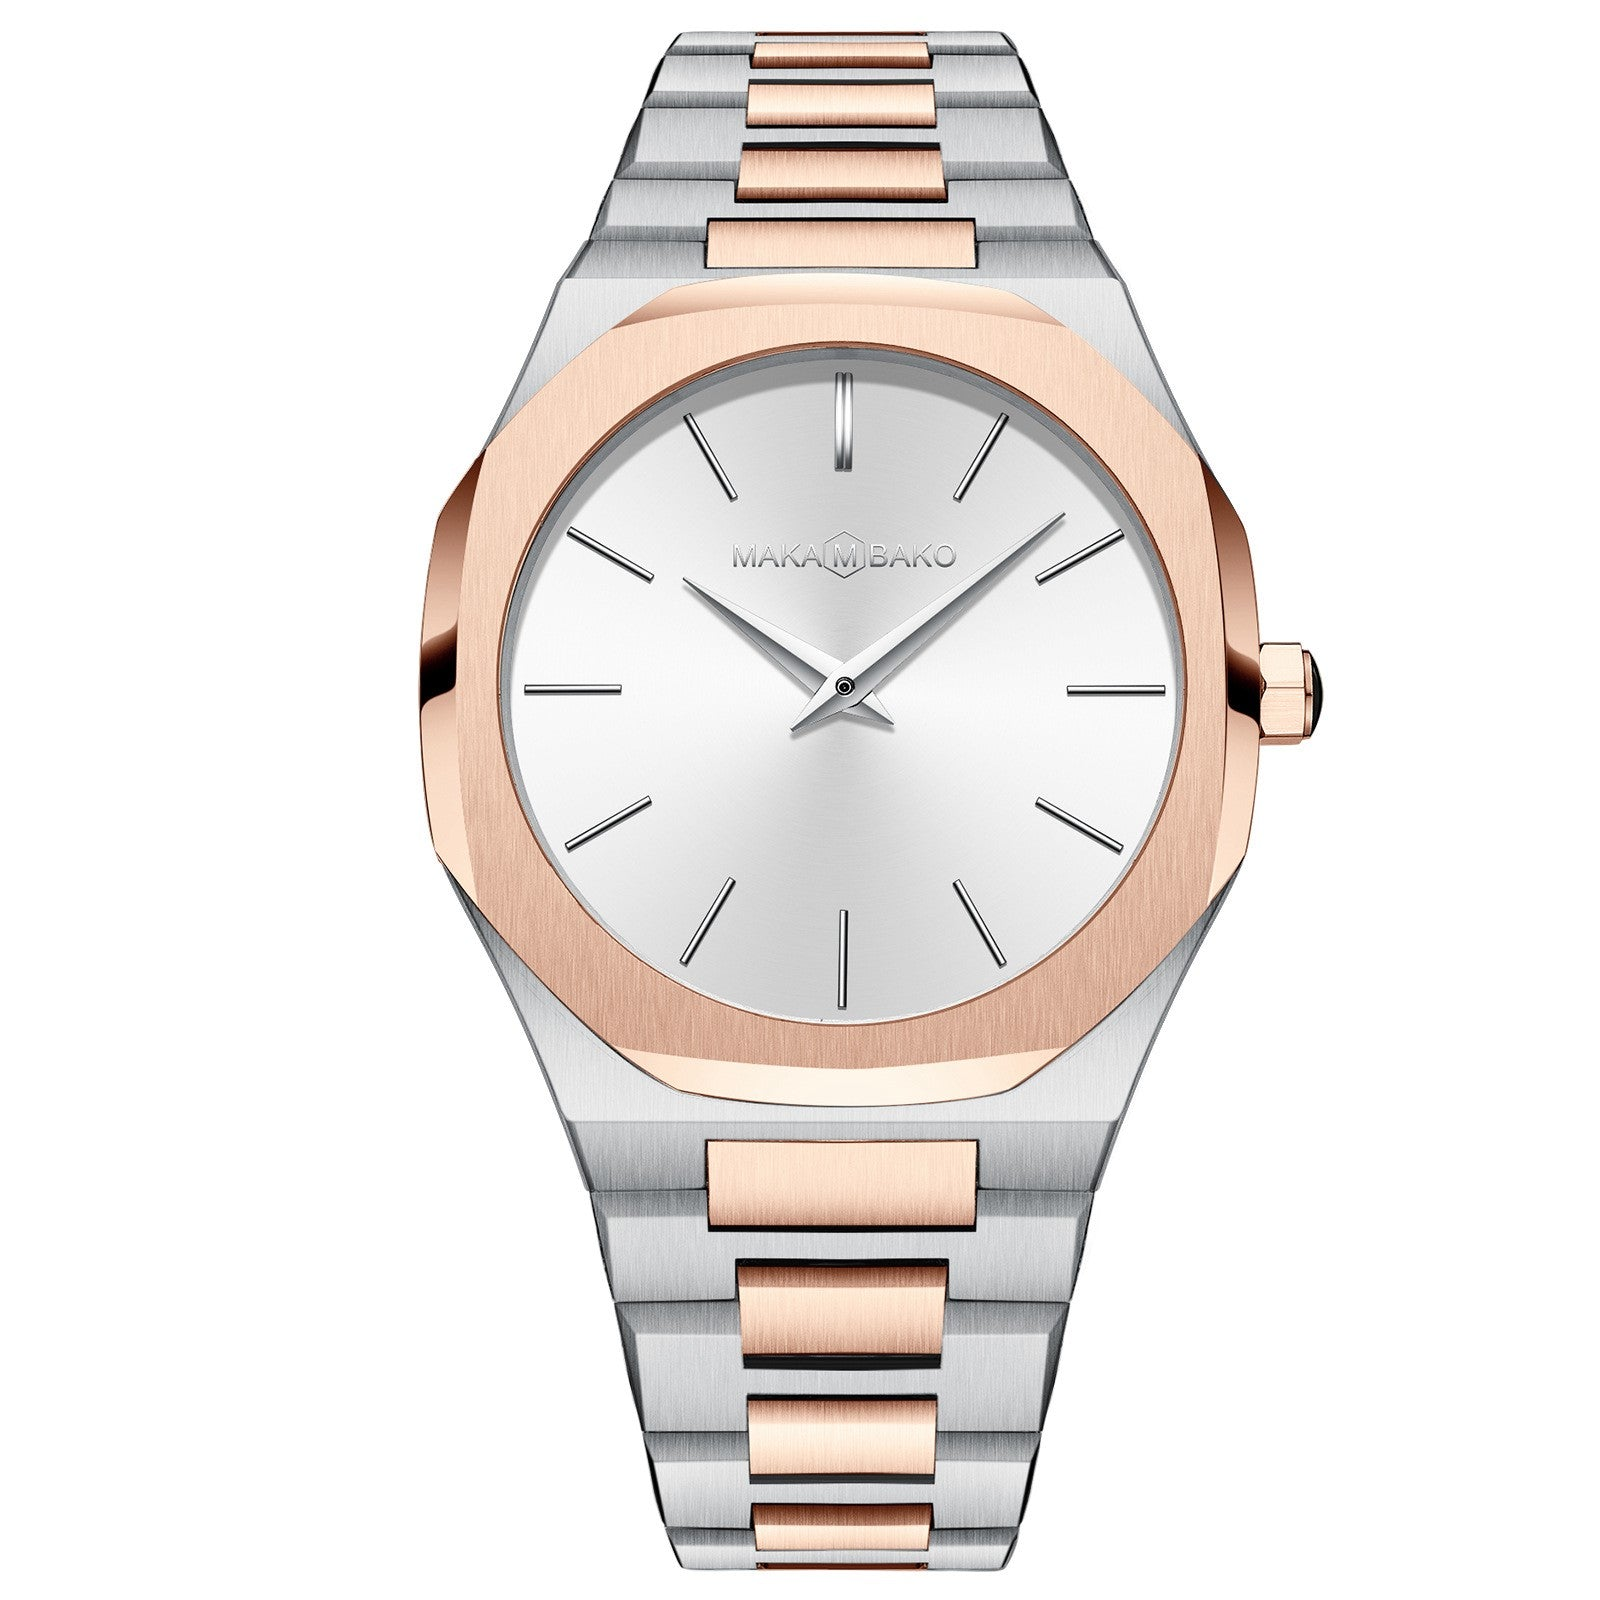 Stainless steel strap quartz watch